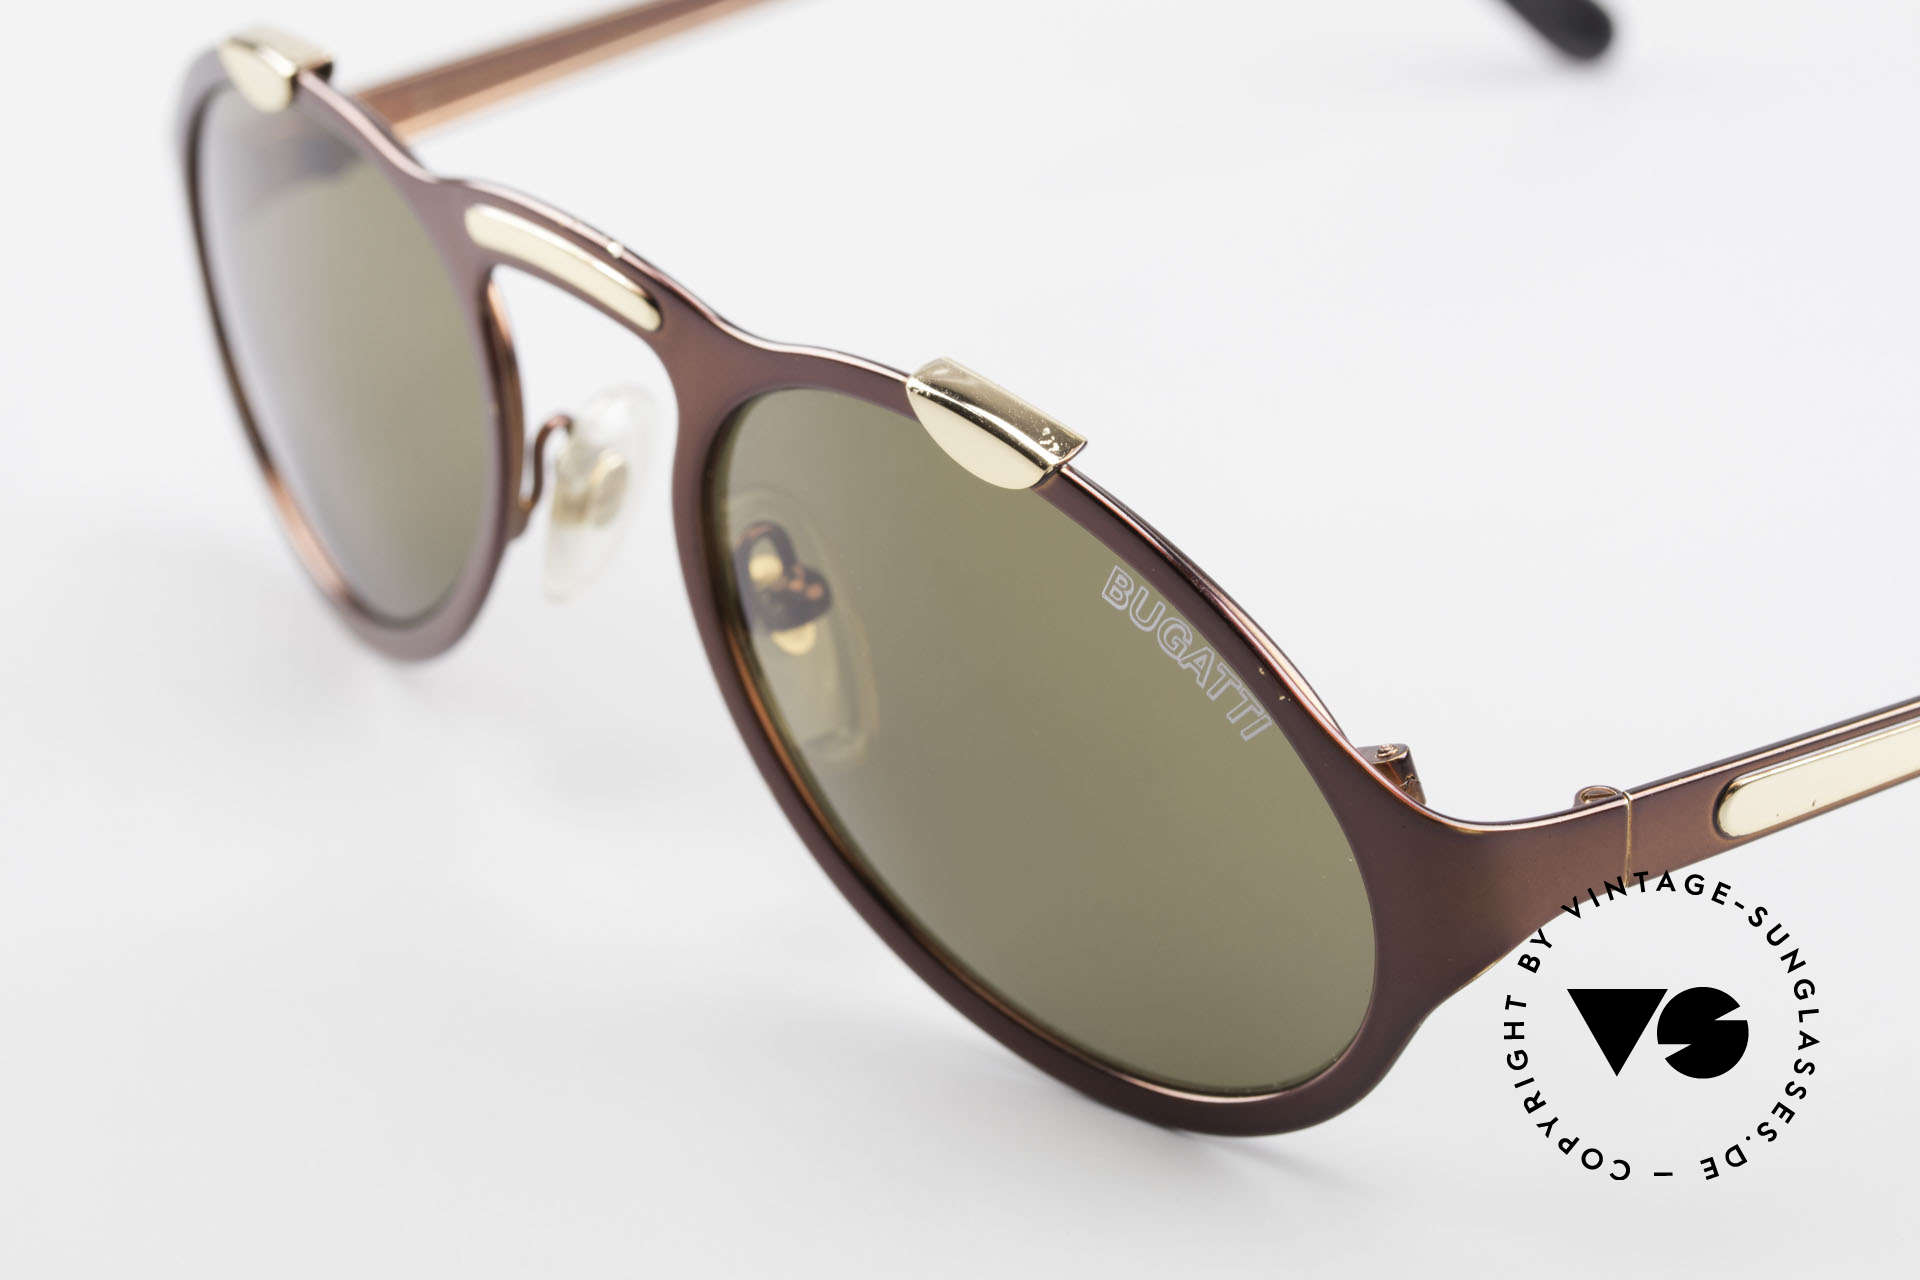 Bugatti 13169 Limited Old Collector's Sunglasses, pair is slightly DAMAGED (was stored incorrectly)!, Made for Men